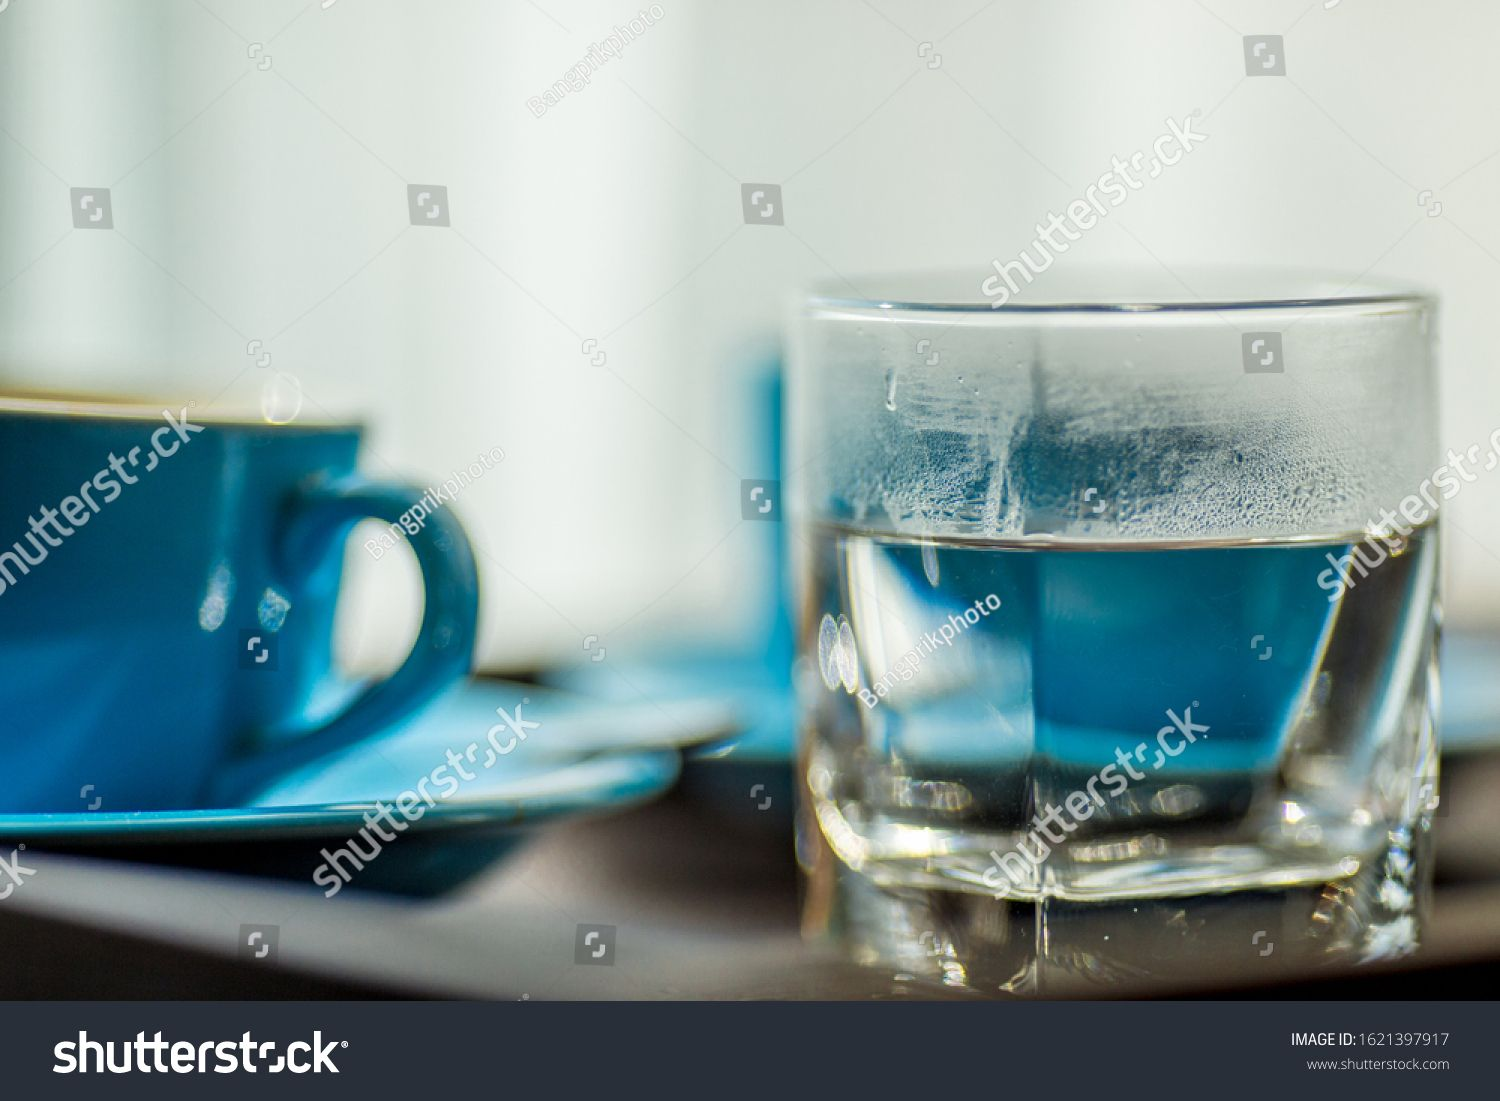 Blurred background view of a mug or coffee cup, a cup of water or a drink on the table, for customer service in a room or restaurant #Sponsored , #spon, #mug#coffee#cup#Blurred